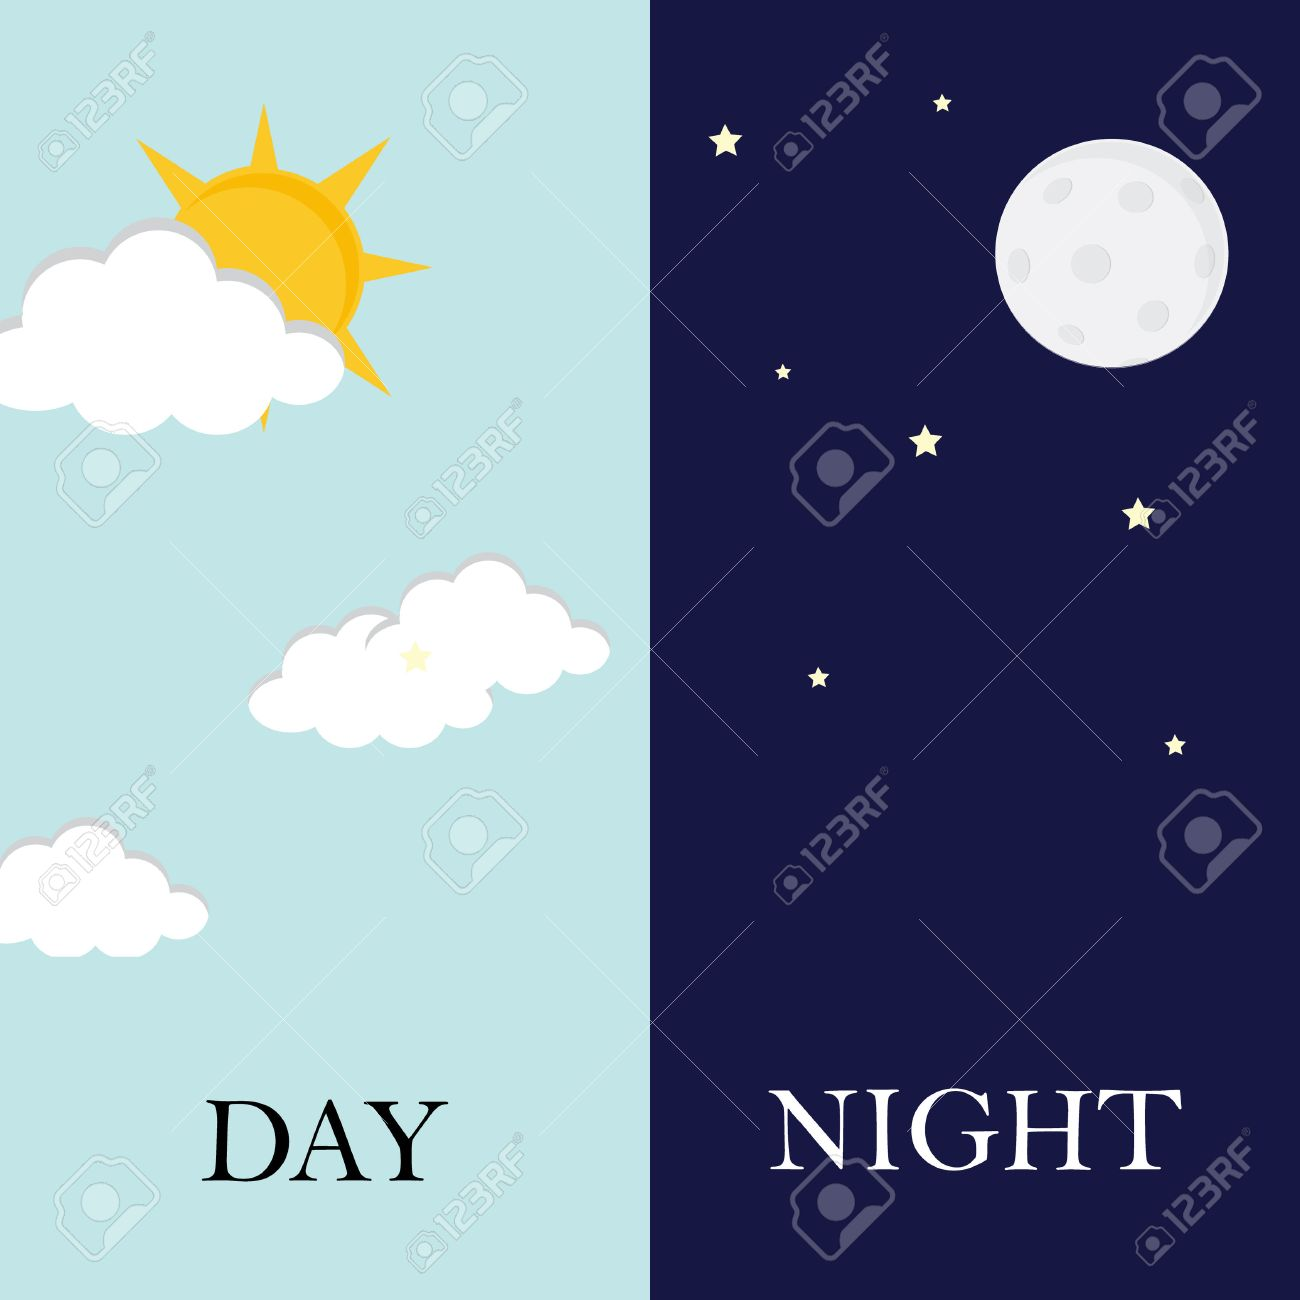 Vector illustration of day and night. Day night concept, sun and moon, day night icon - 55645452